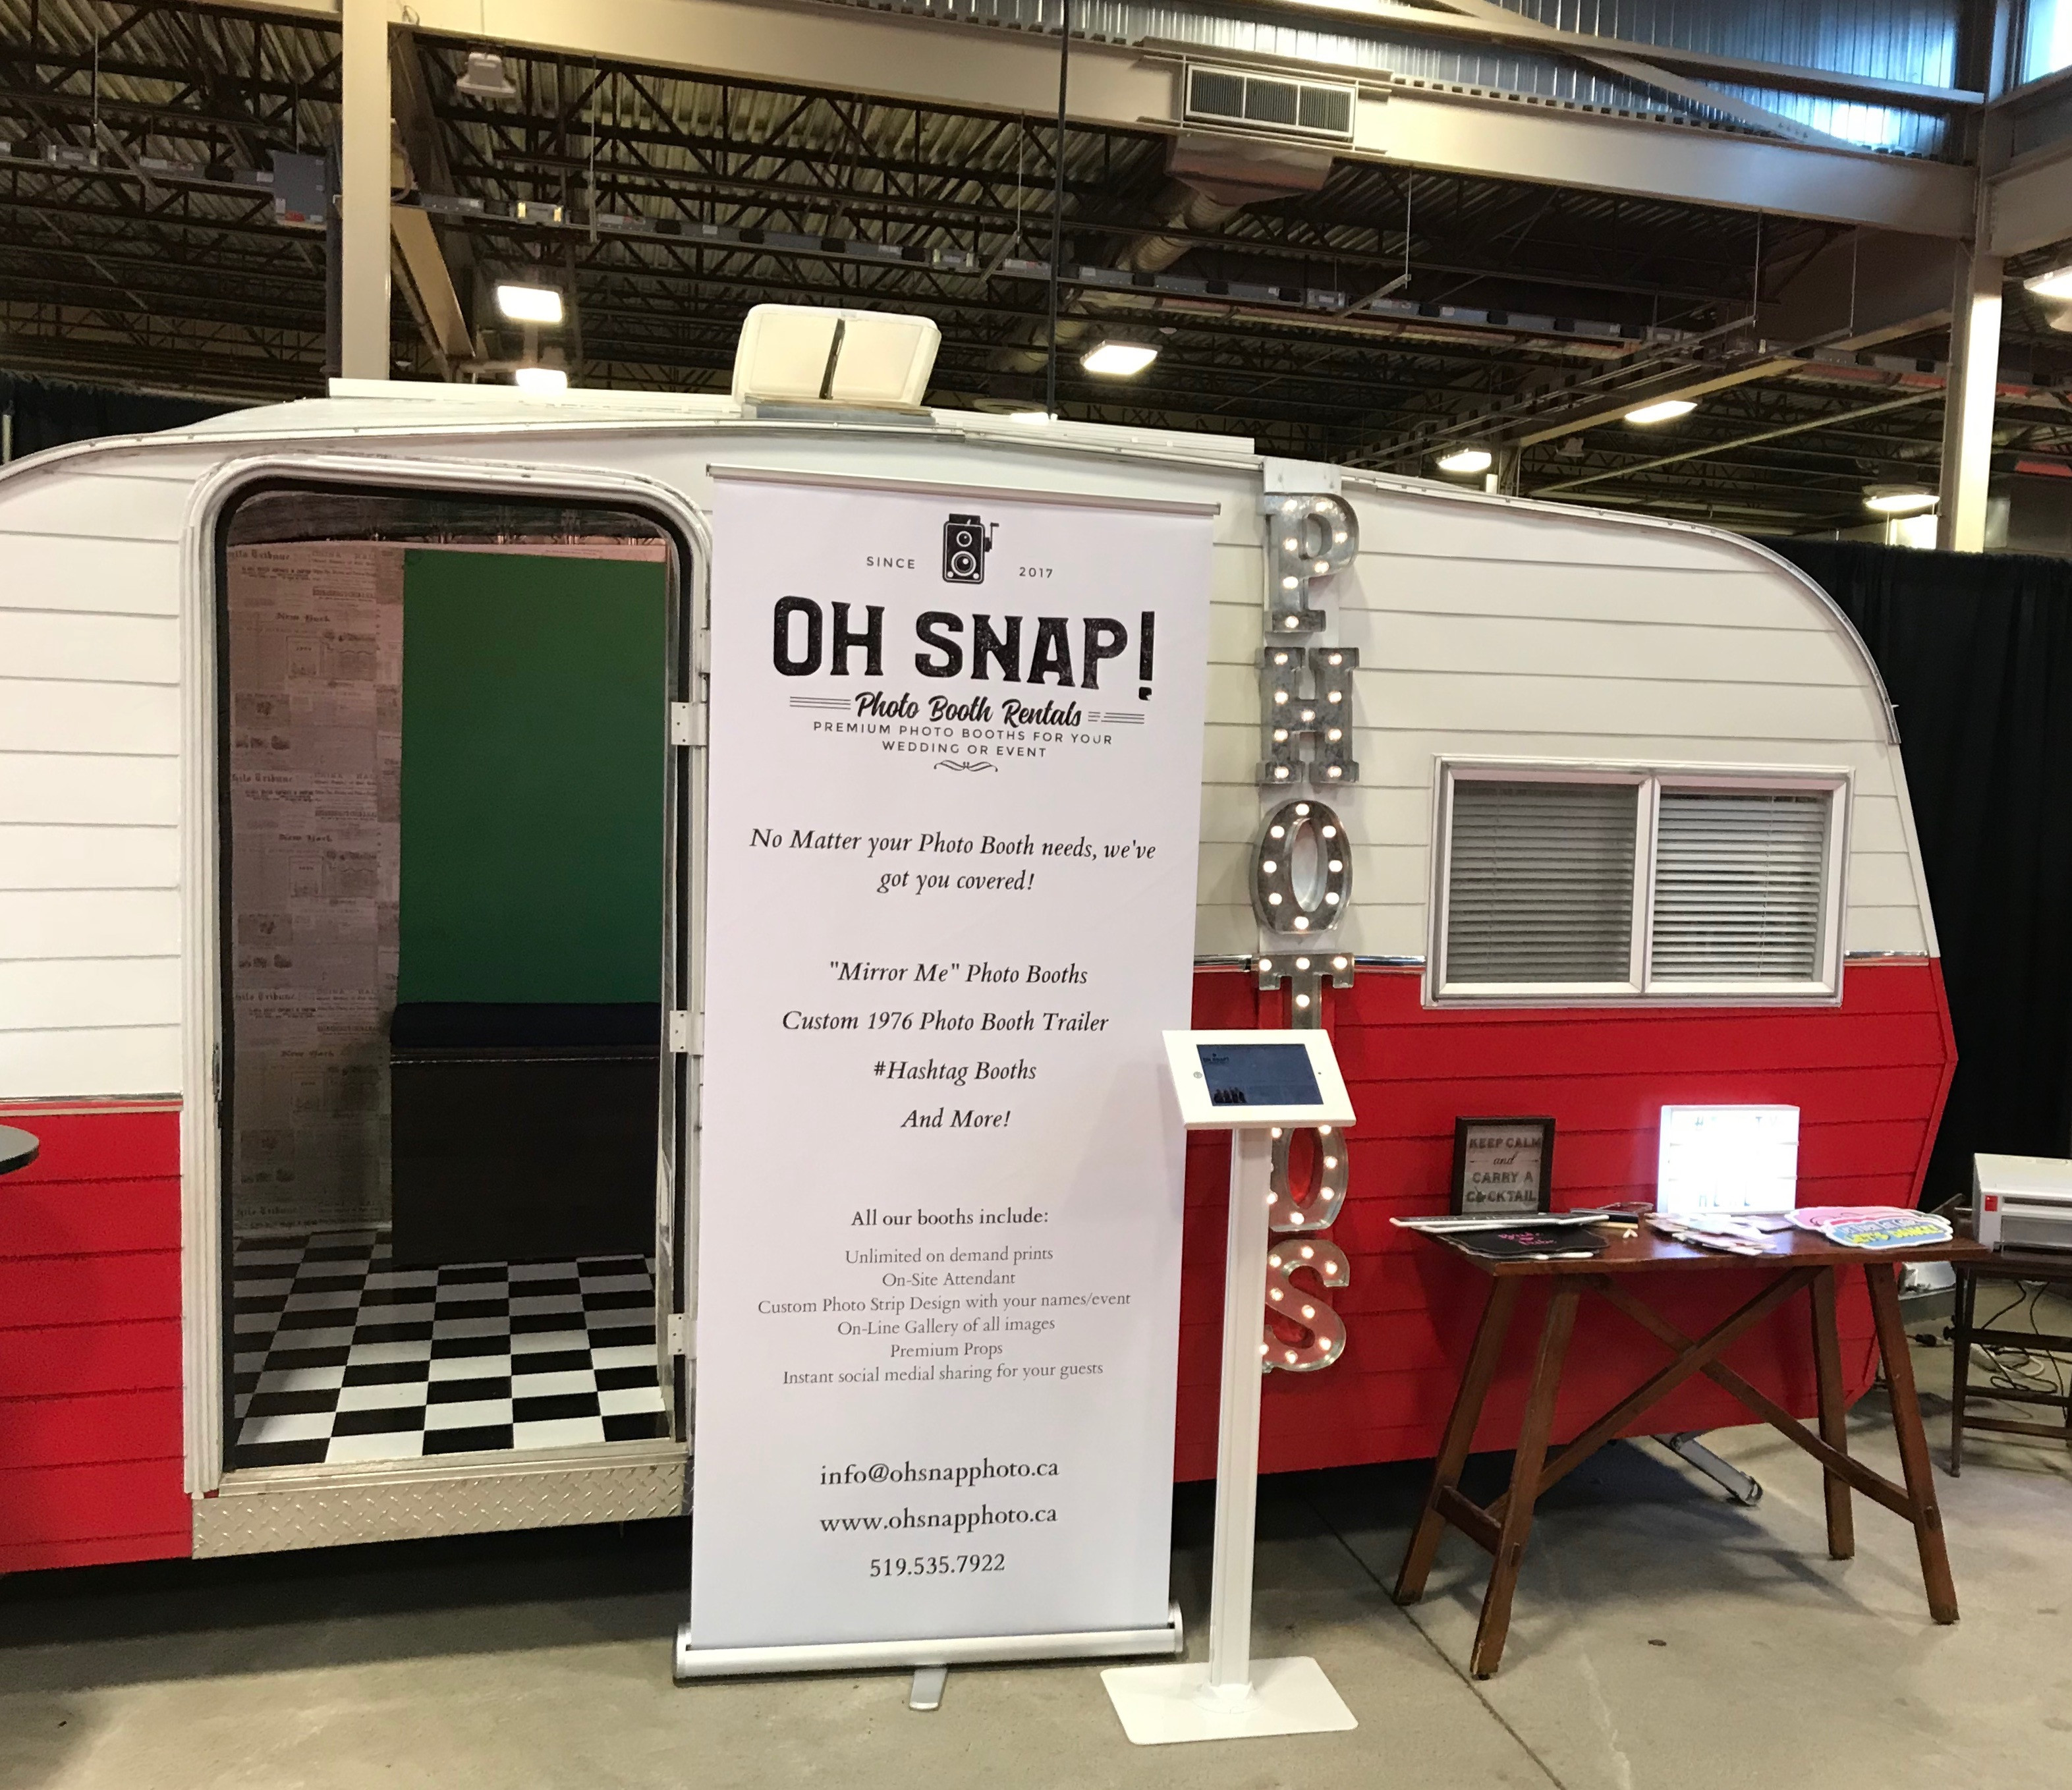 3 hour Photo Booth Trailer rental